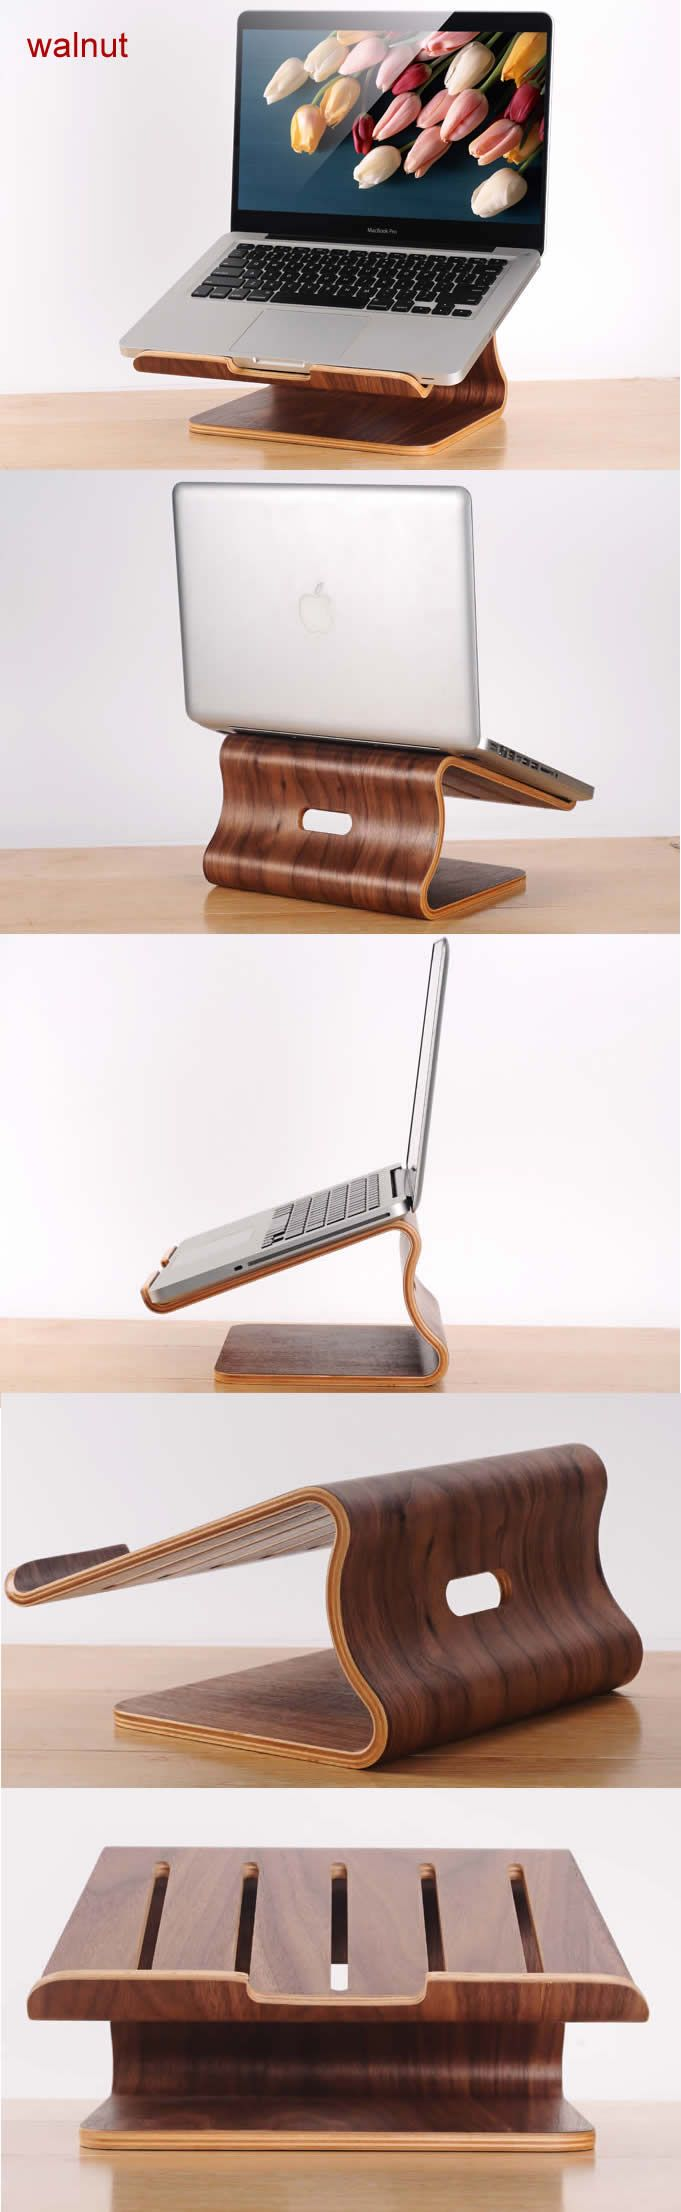 Wooden Cooling Stand Dock Desk Holder for Laptop Notebook Macbook Cooling Stand